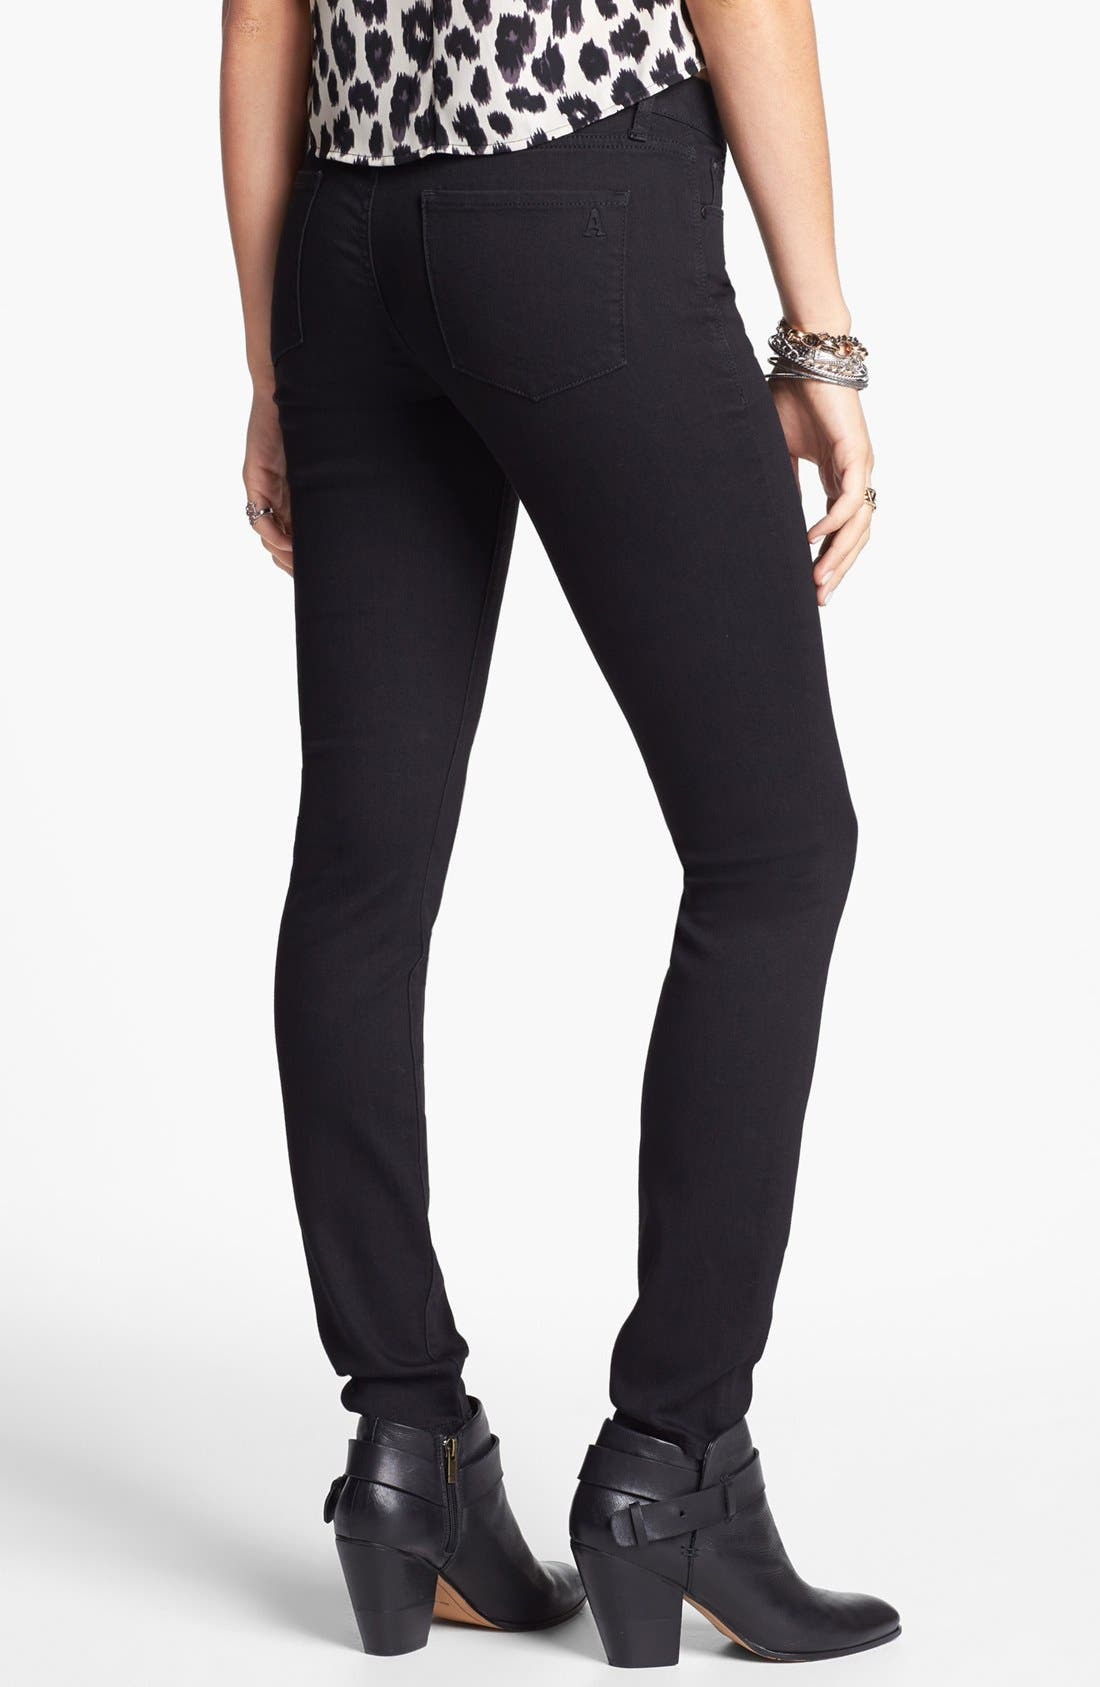 Alternate Image 2  - Articles of Society 'Mya' Skinny Jeans (Blackout) (Juniors)